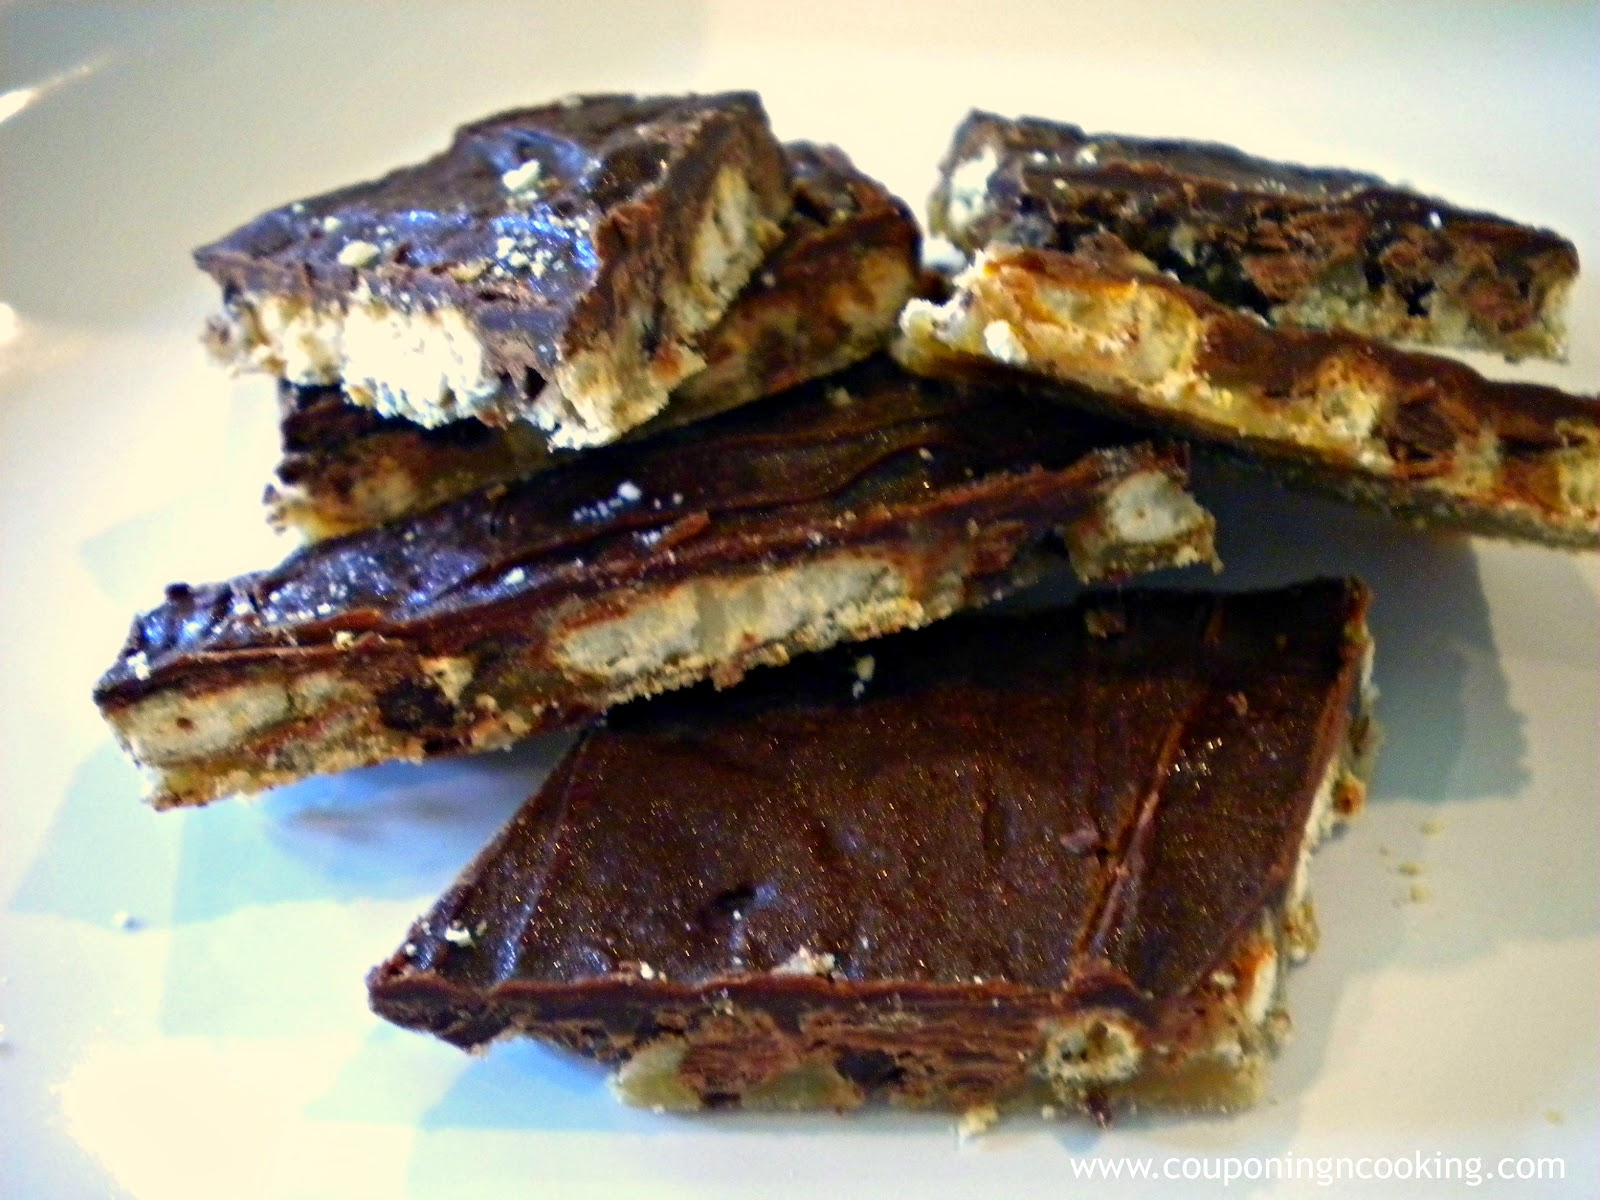 Tobins' Tastes: Chocolate Covered Pretzel Toffee